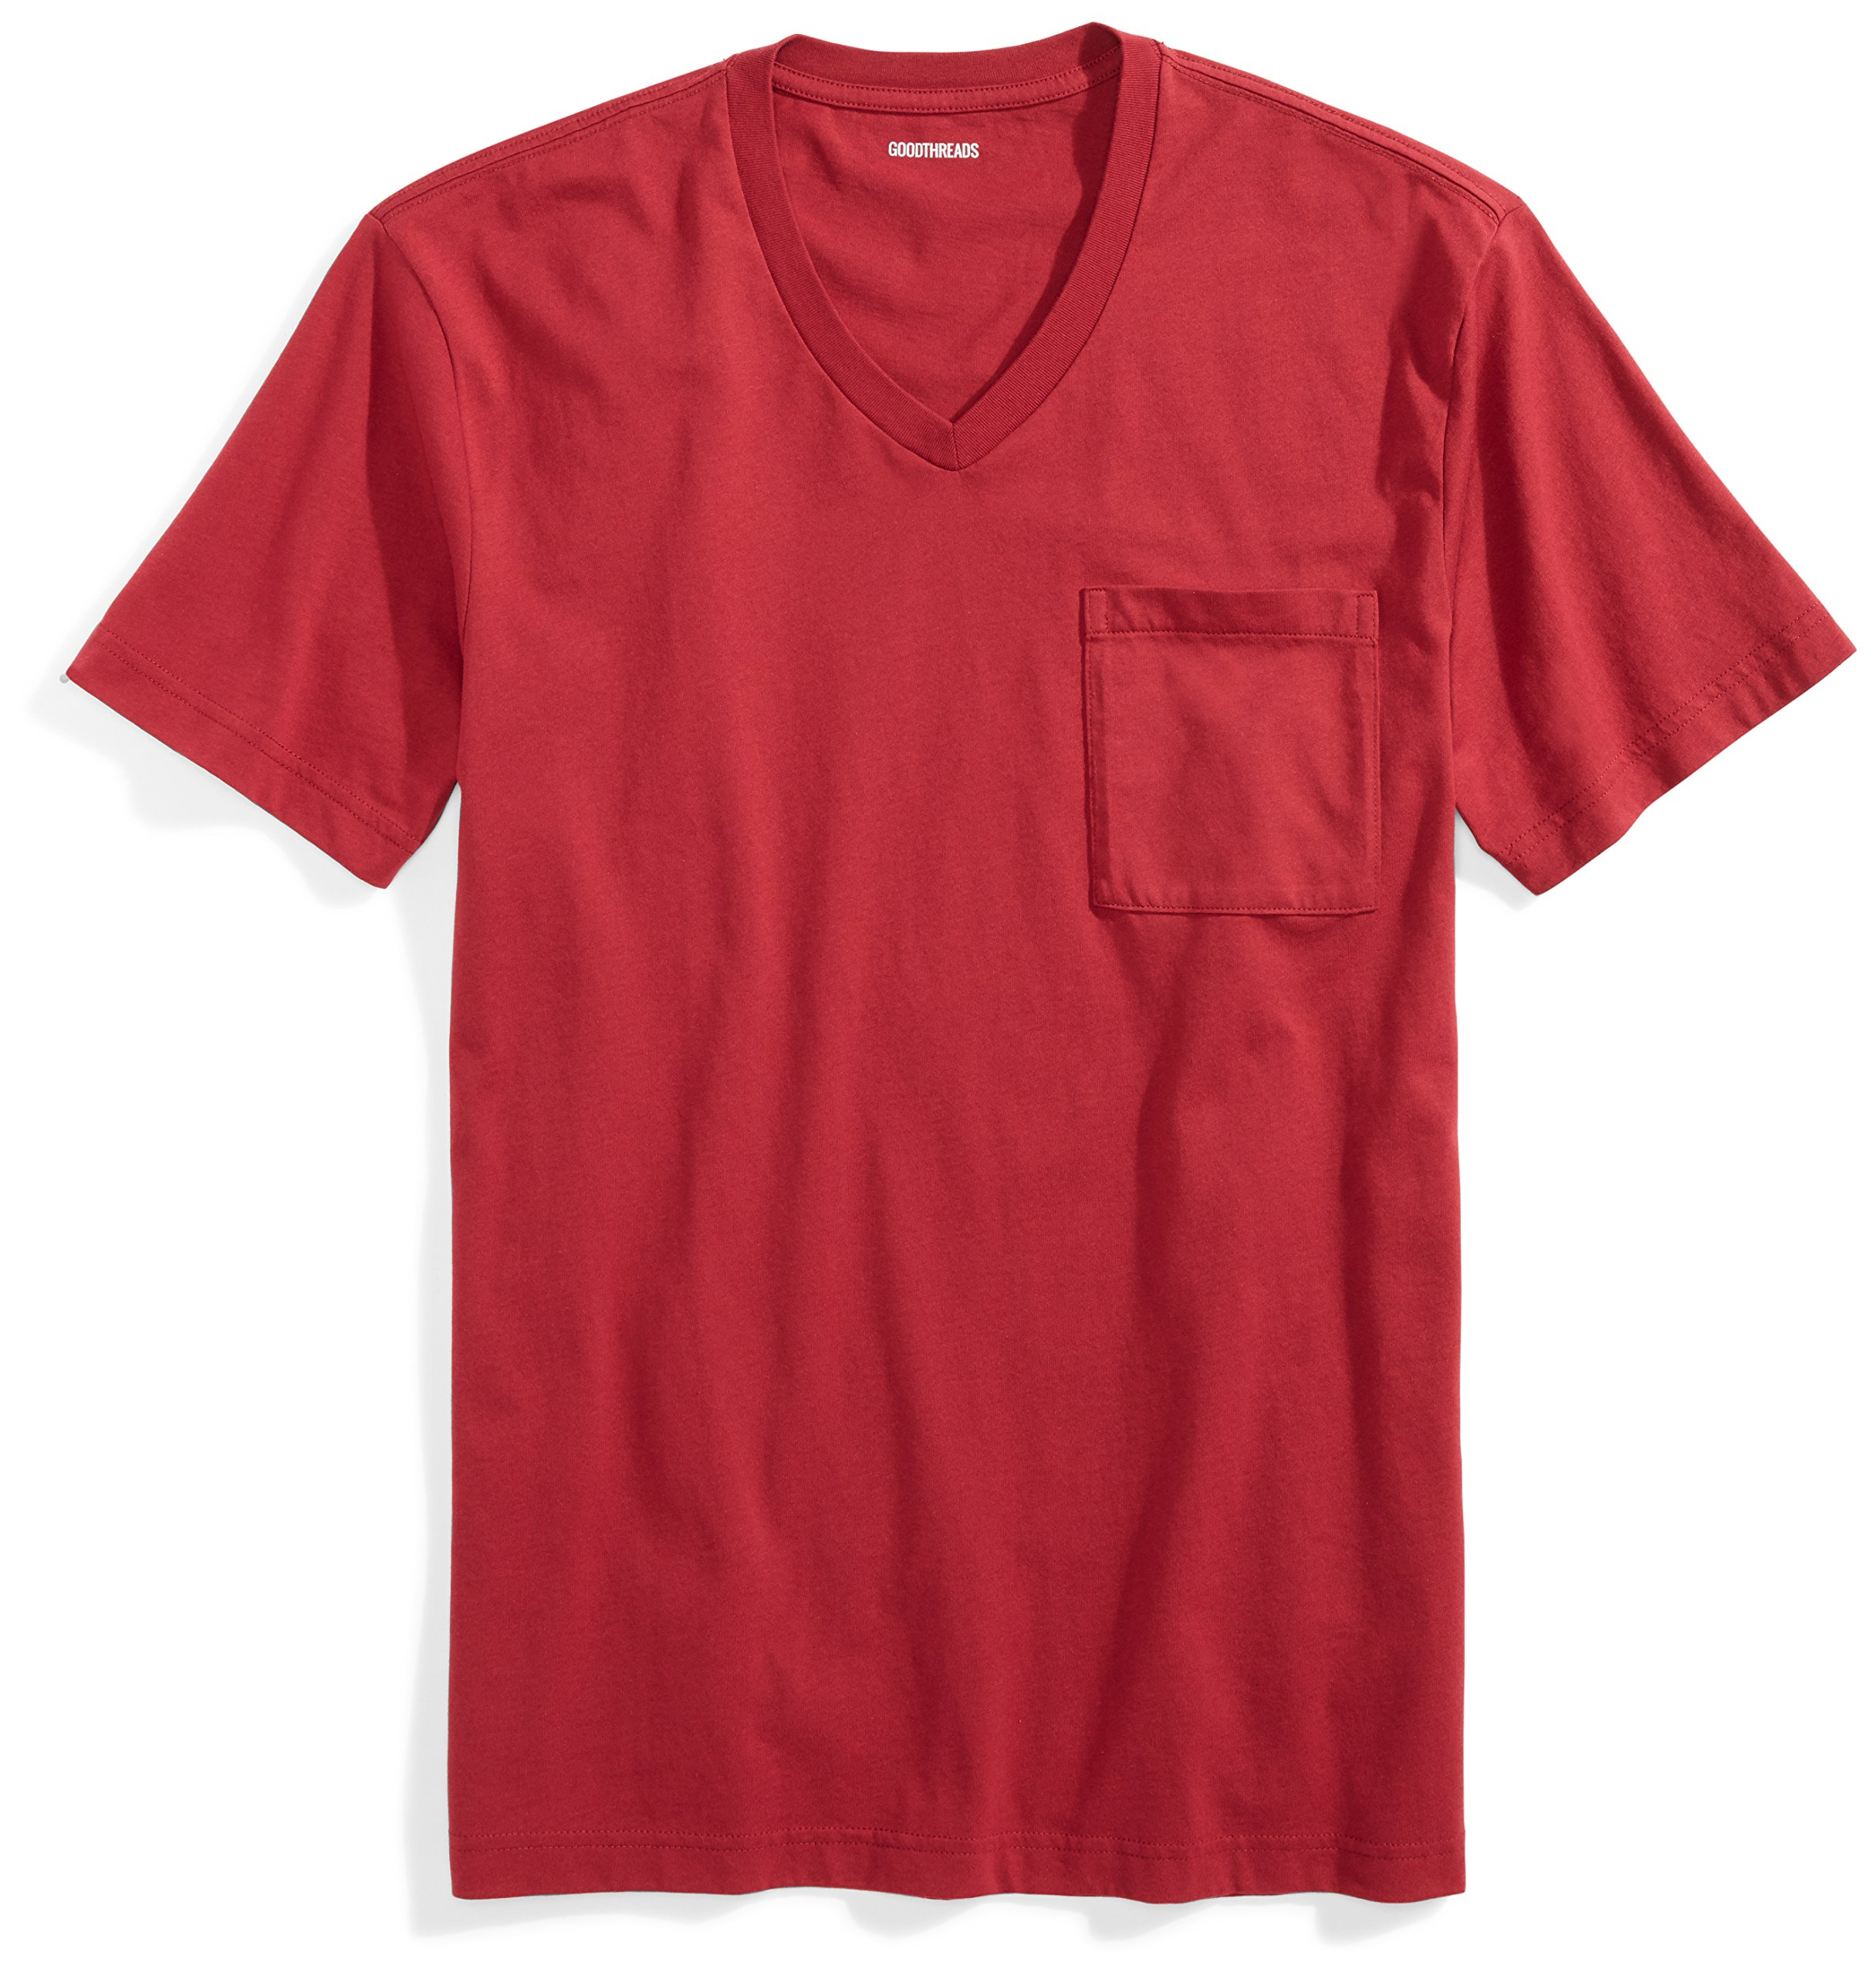 Goodthreads Men's Short-Sleeve V-Neck Cotton T-Shirt, Red, X-Large